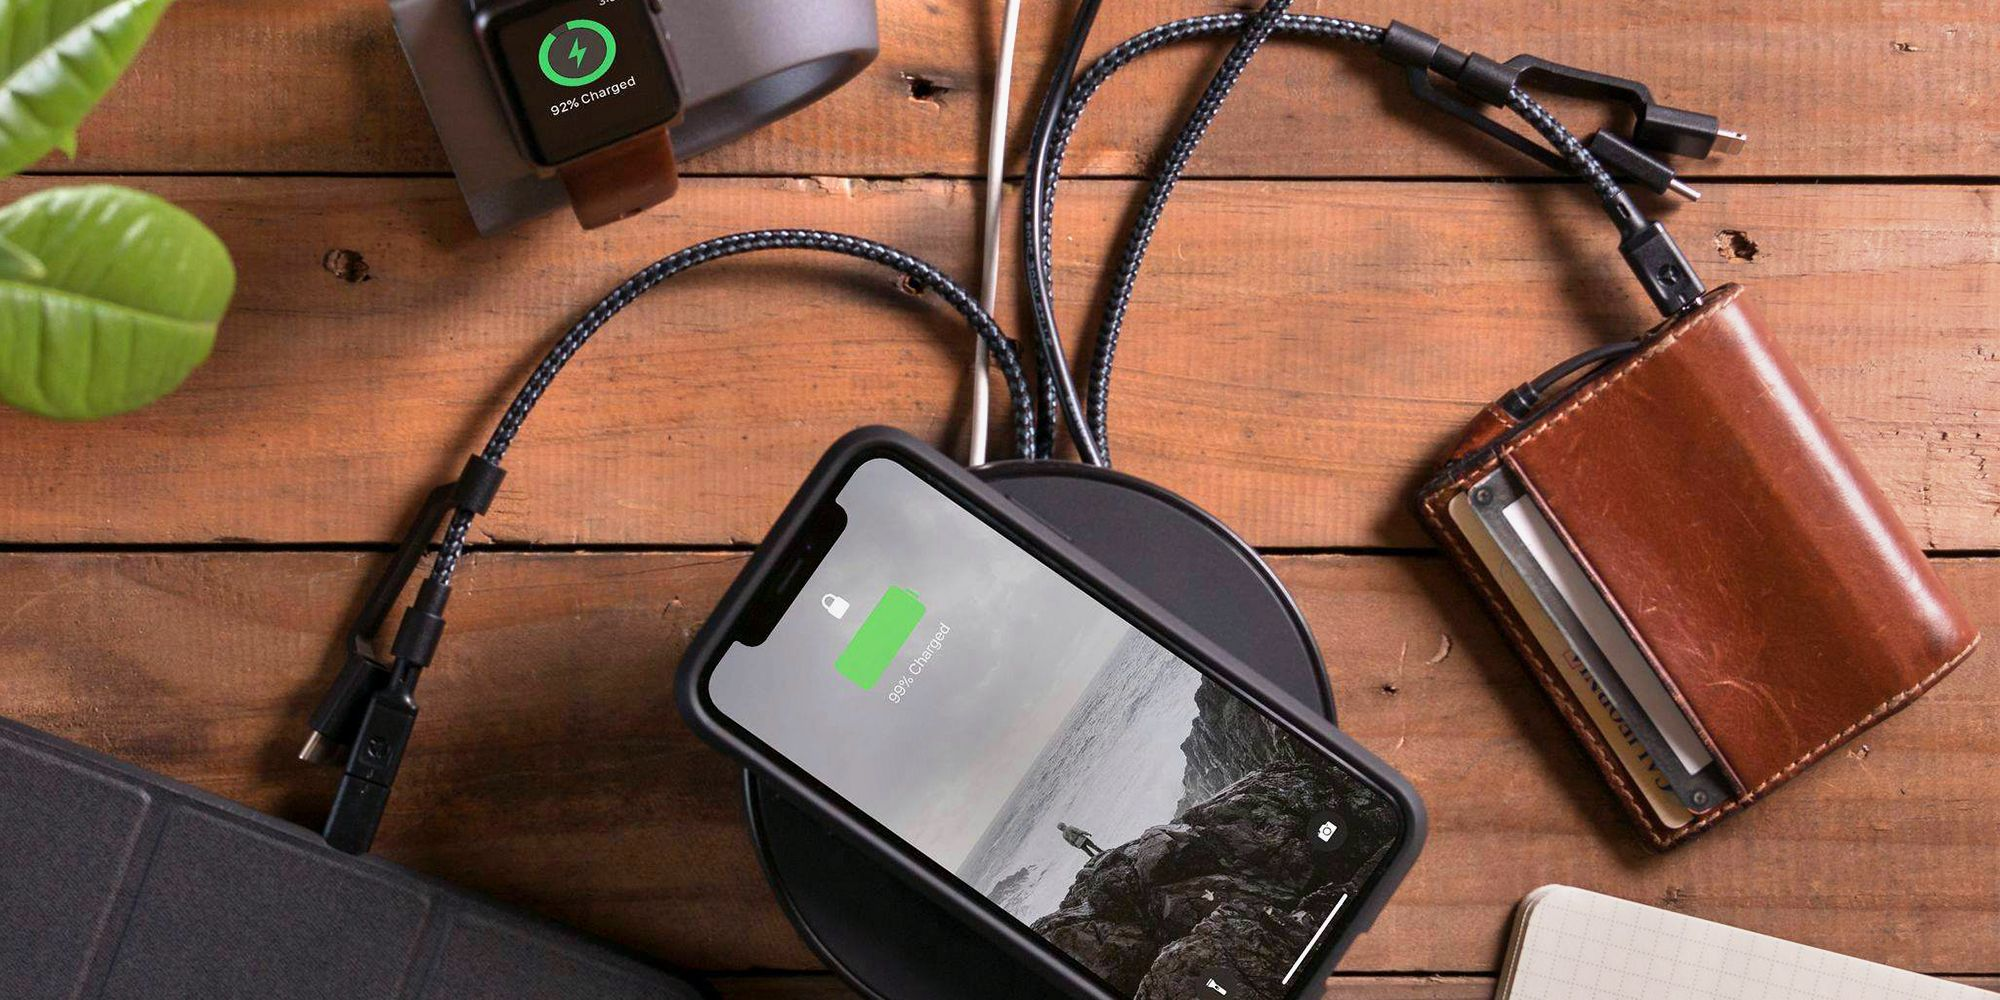 5 Best Micro Usb Cables For Keeping Your Gadgets Charged Cords Wiring A Plug 2018